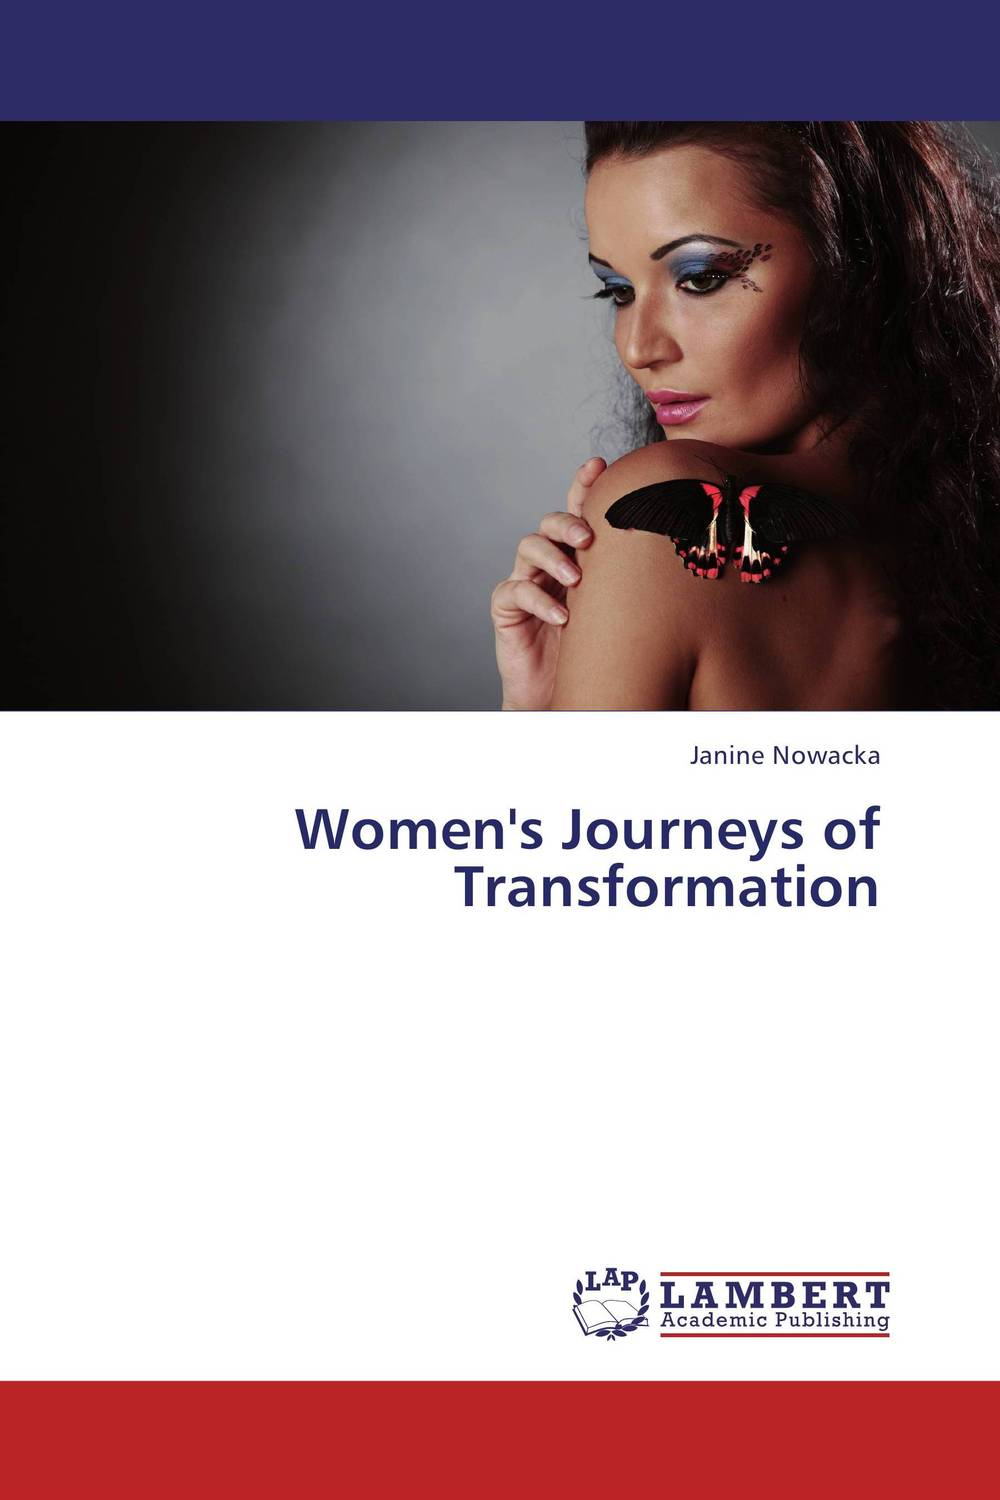 Women's Journeys of Transformation viruses cell transformation and cancer 5